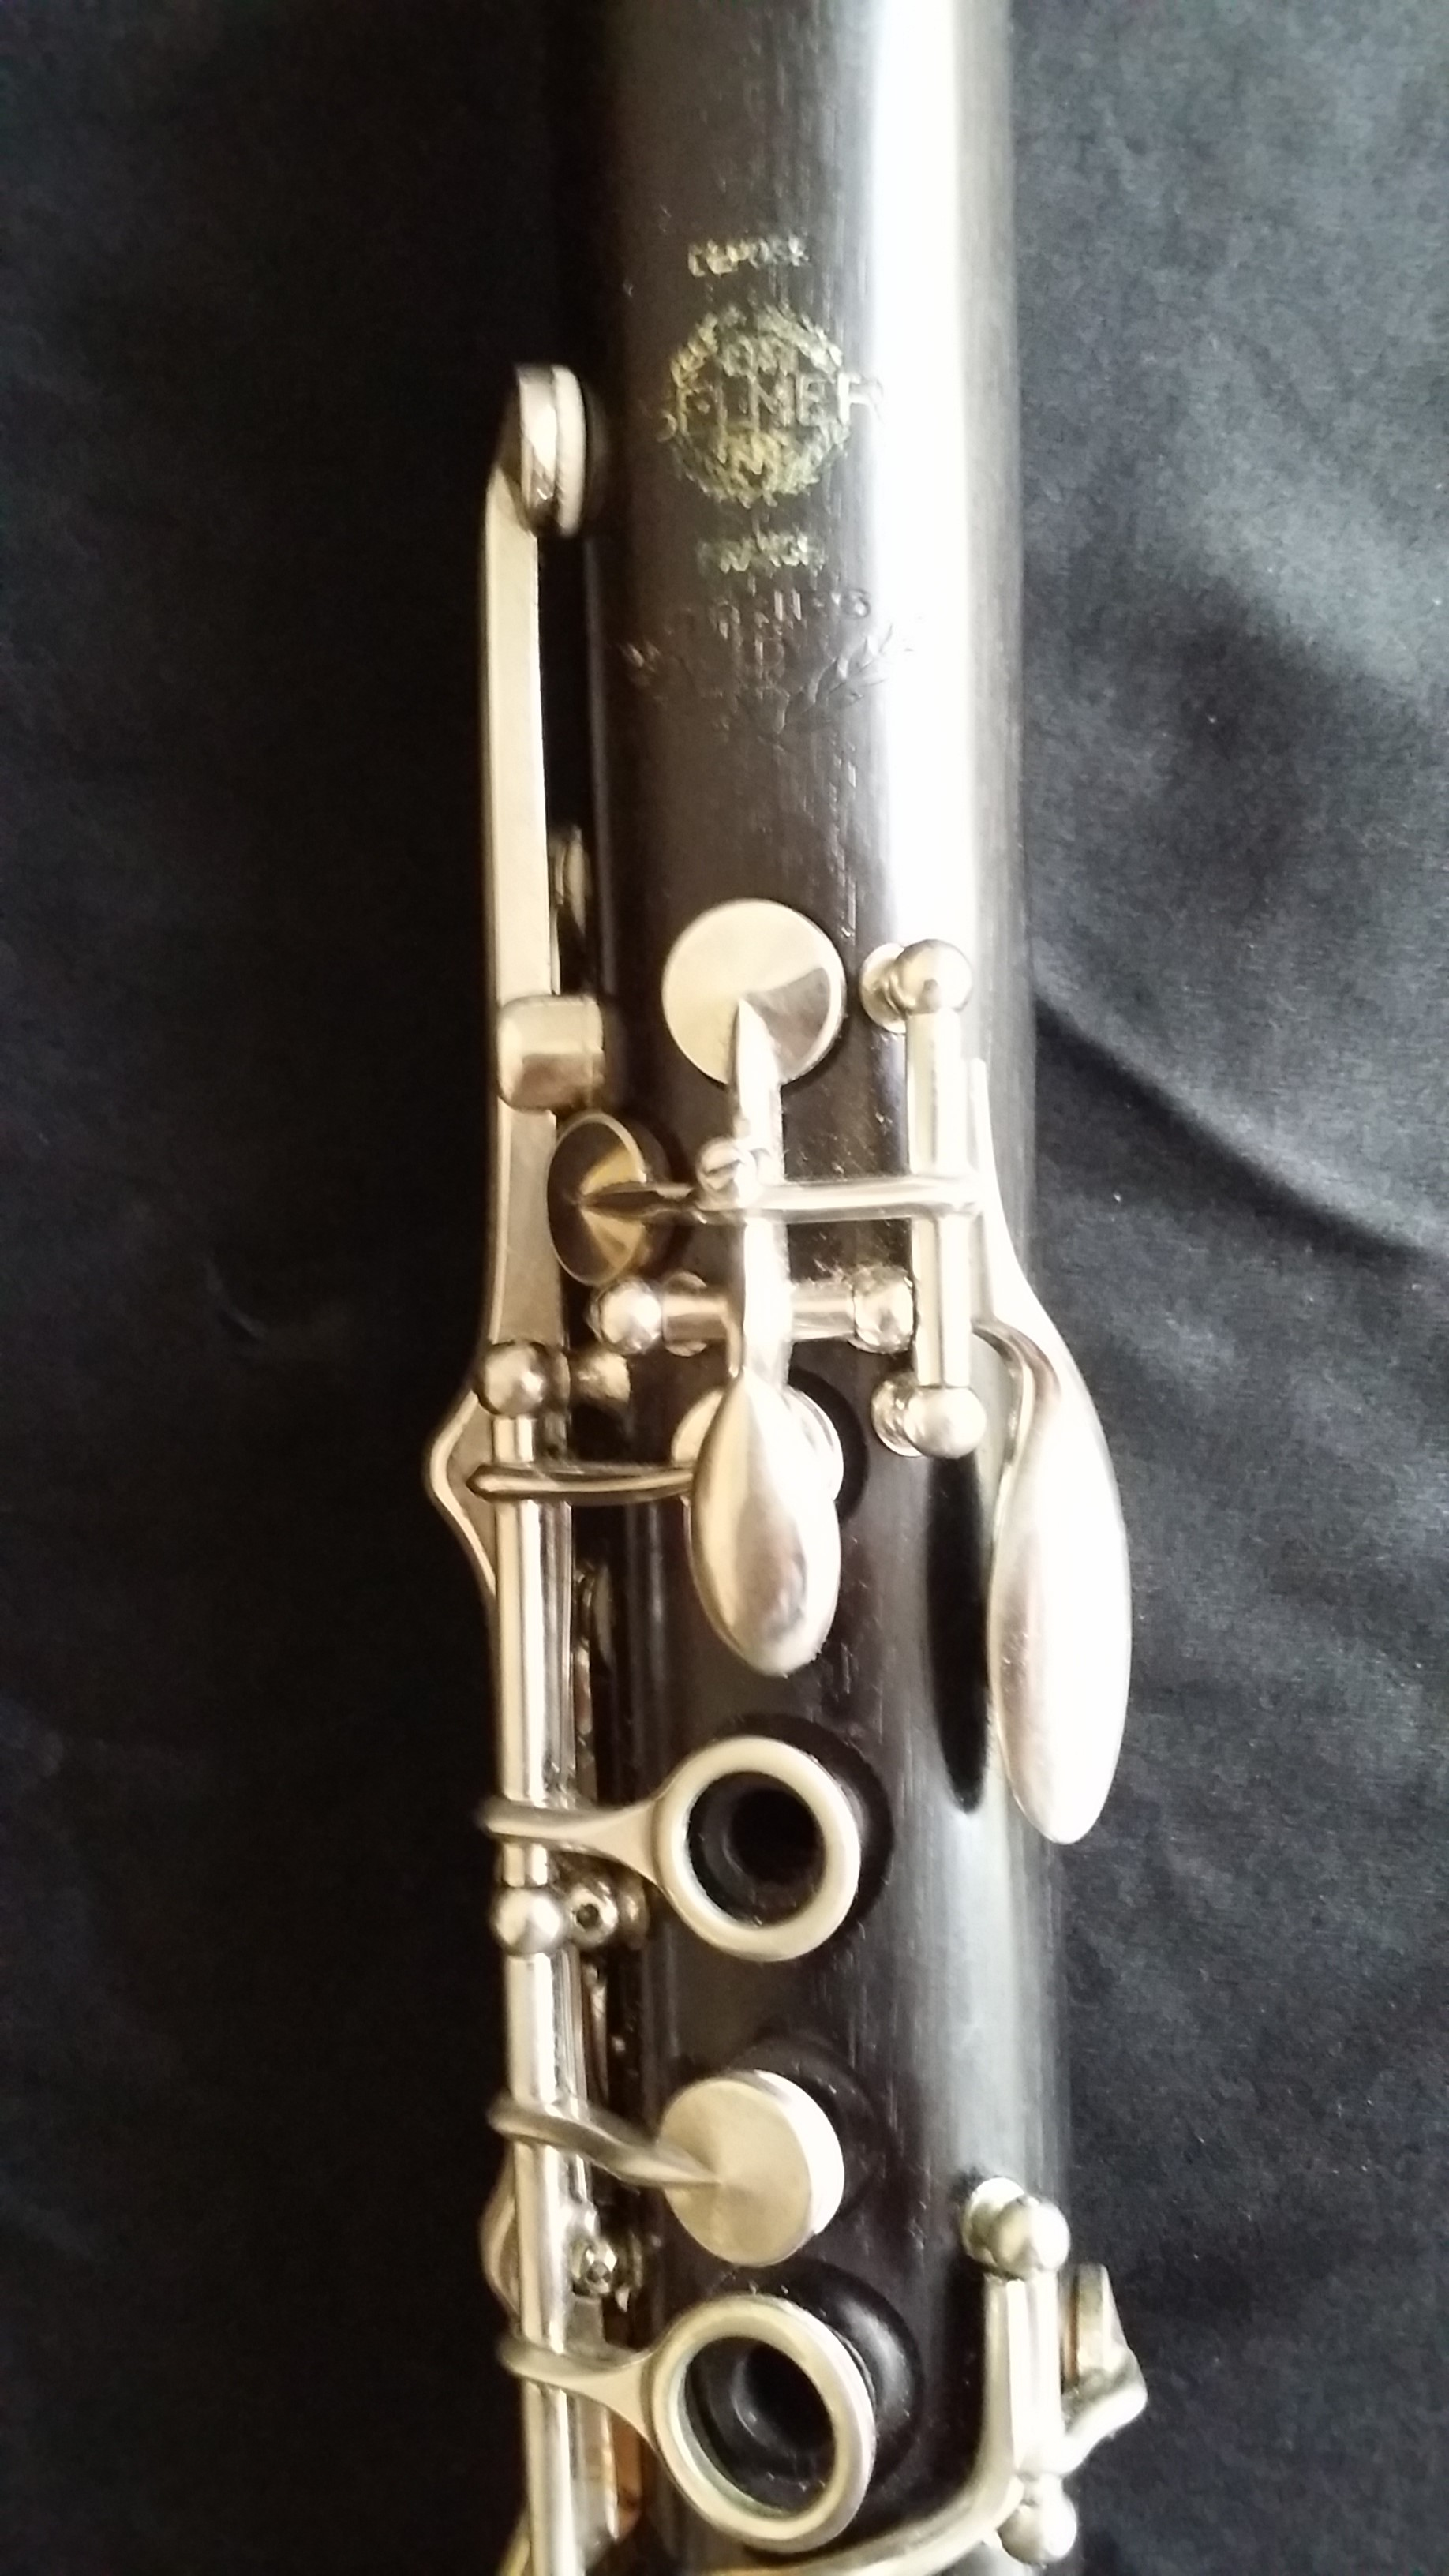 Bb clarinet Selmer Paris Seies 9 - large bore